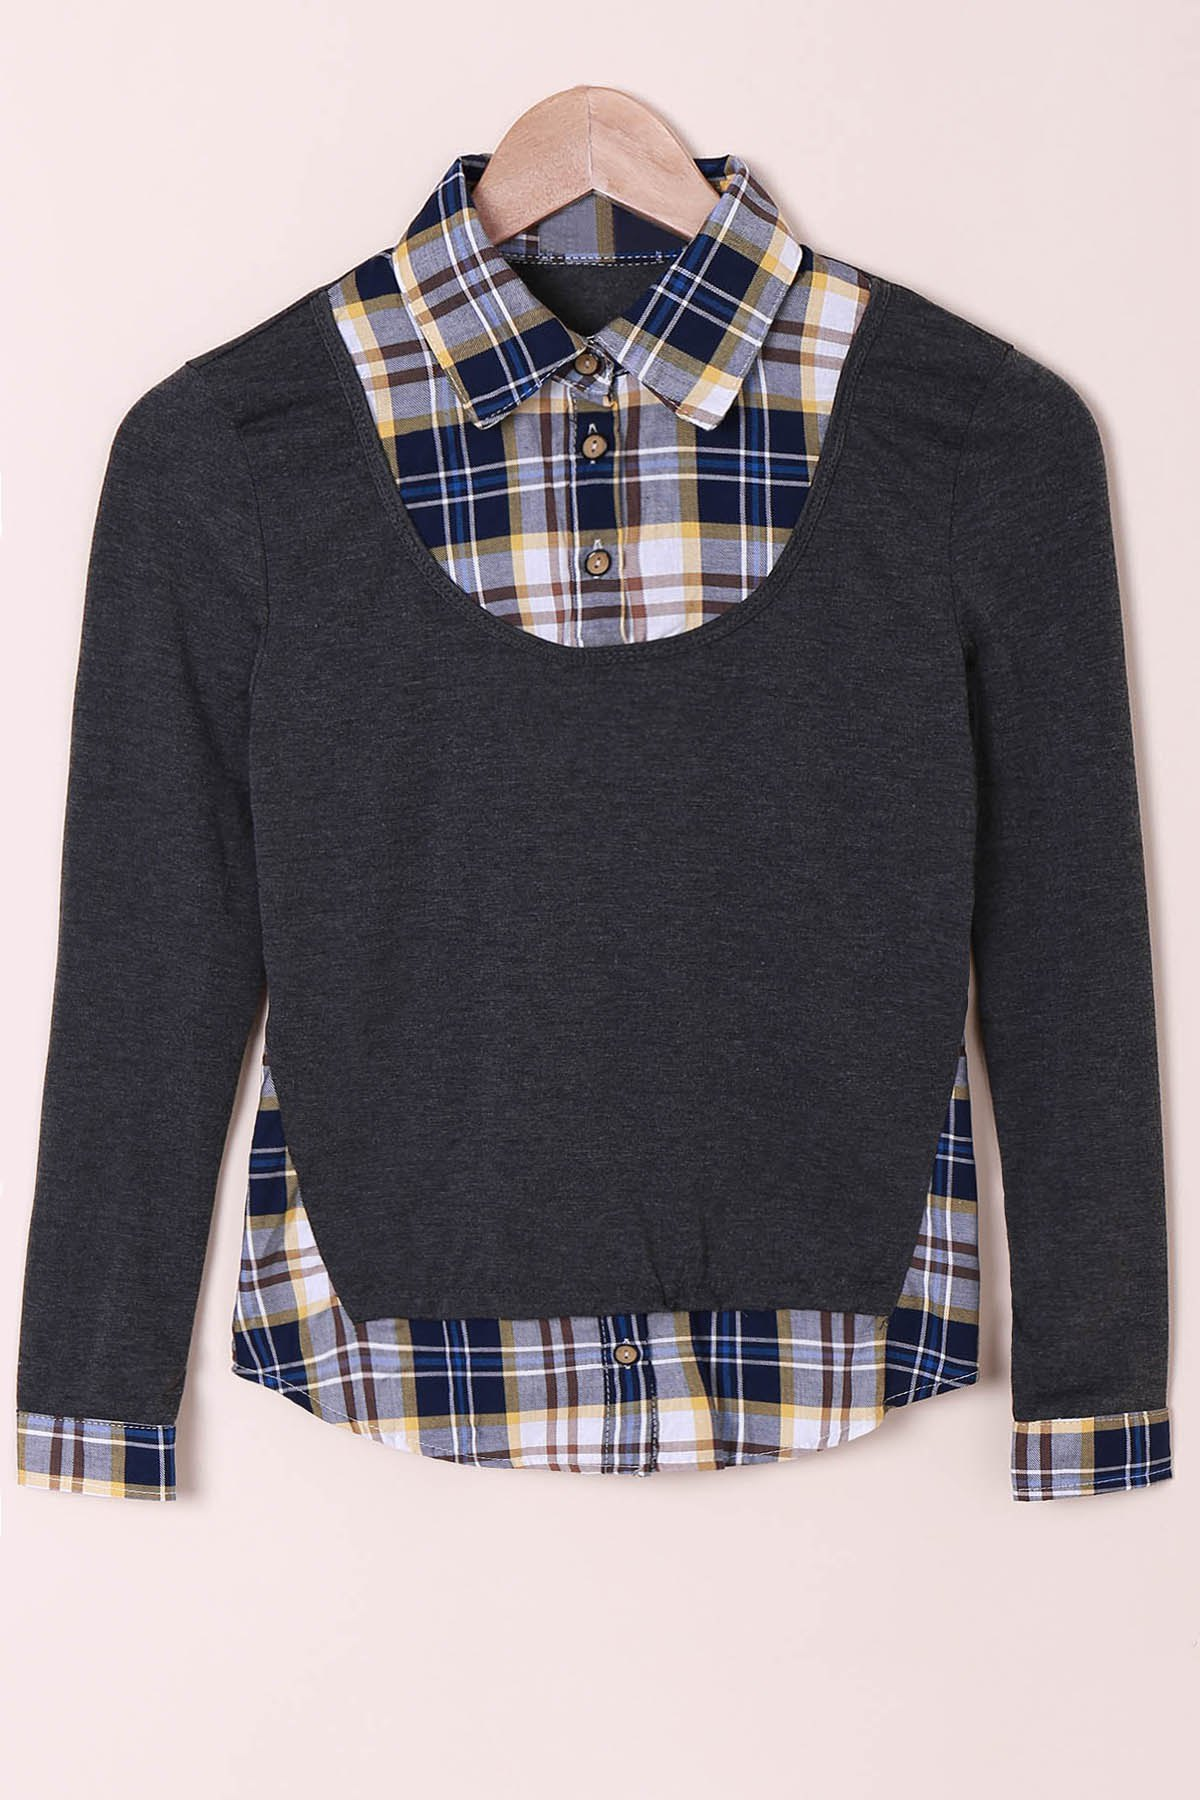 Casual Shirt Collar Long Sleeve Spliced Plaid Faux Twinset Womens ShirtWOMEN<br><br>Size: M; Color: DEEP GRAY; Style: Casual; Material: Cotton Blends; Shirt Length: Regular; Sleeve Length: Full; Collar: Shirt Collar; Pattern Type: Plaid; Weight: 0.262kg; Package Contents: 1 x Shirt;